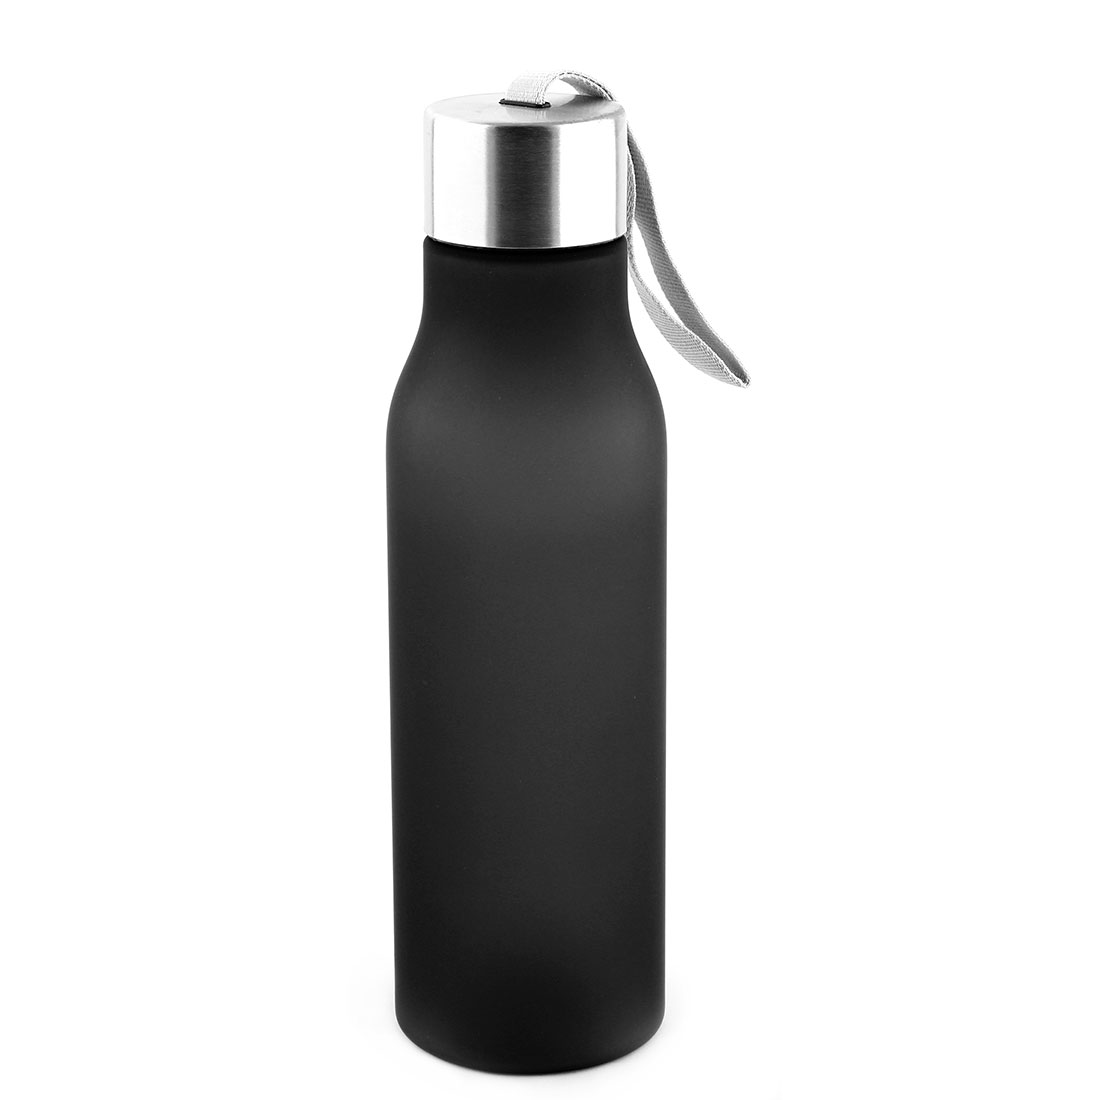 Outdoor Plastic Frosted Water Bottle Portable Fruit Juice Mug Running Cycling Cup Camping Hiking Kettle Black 570ml